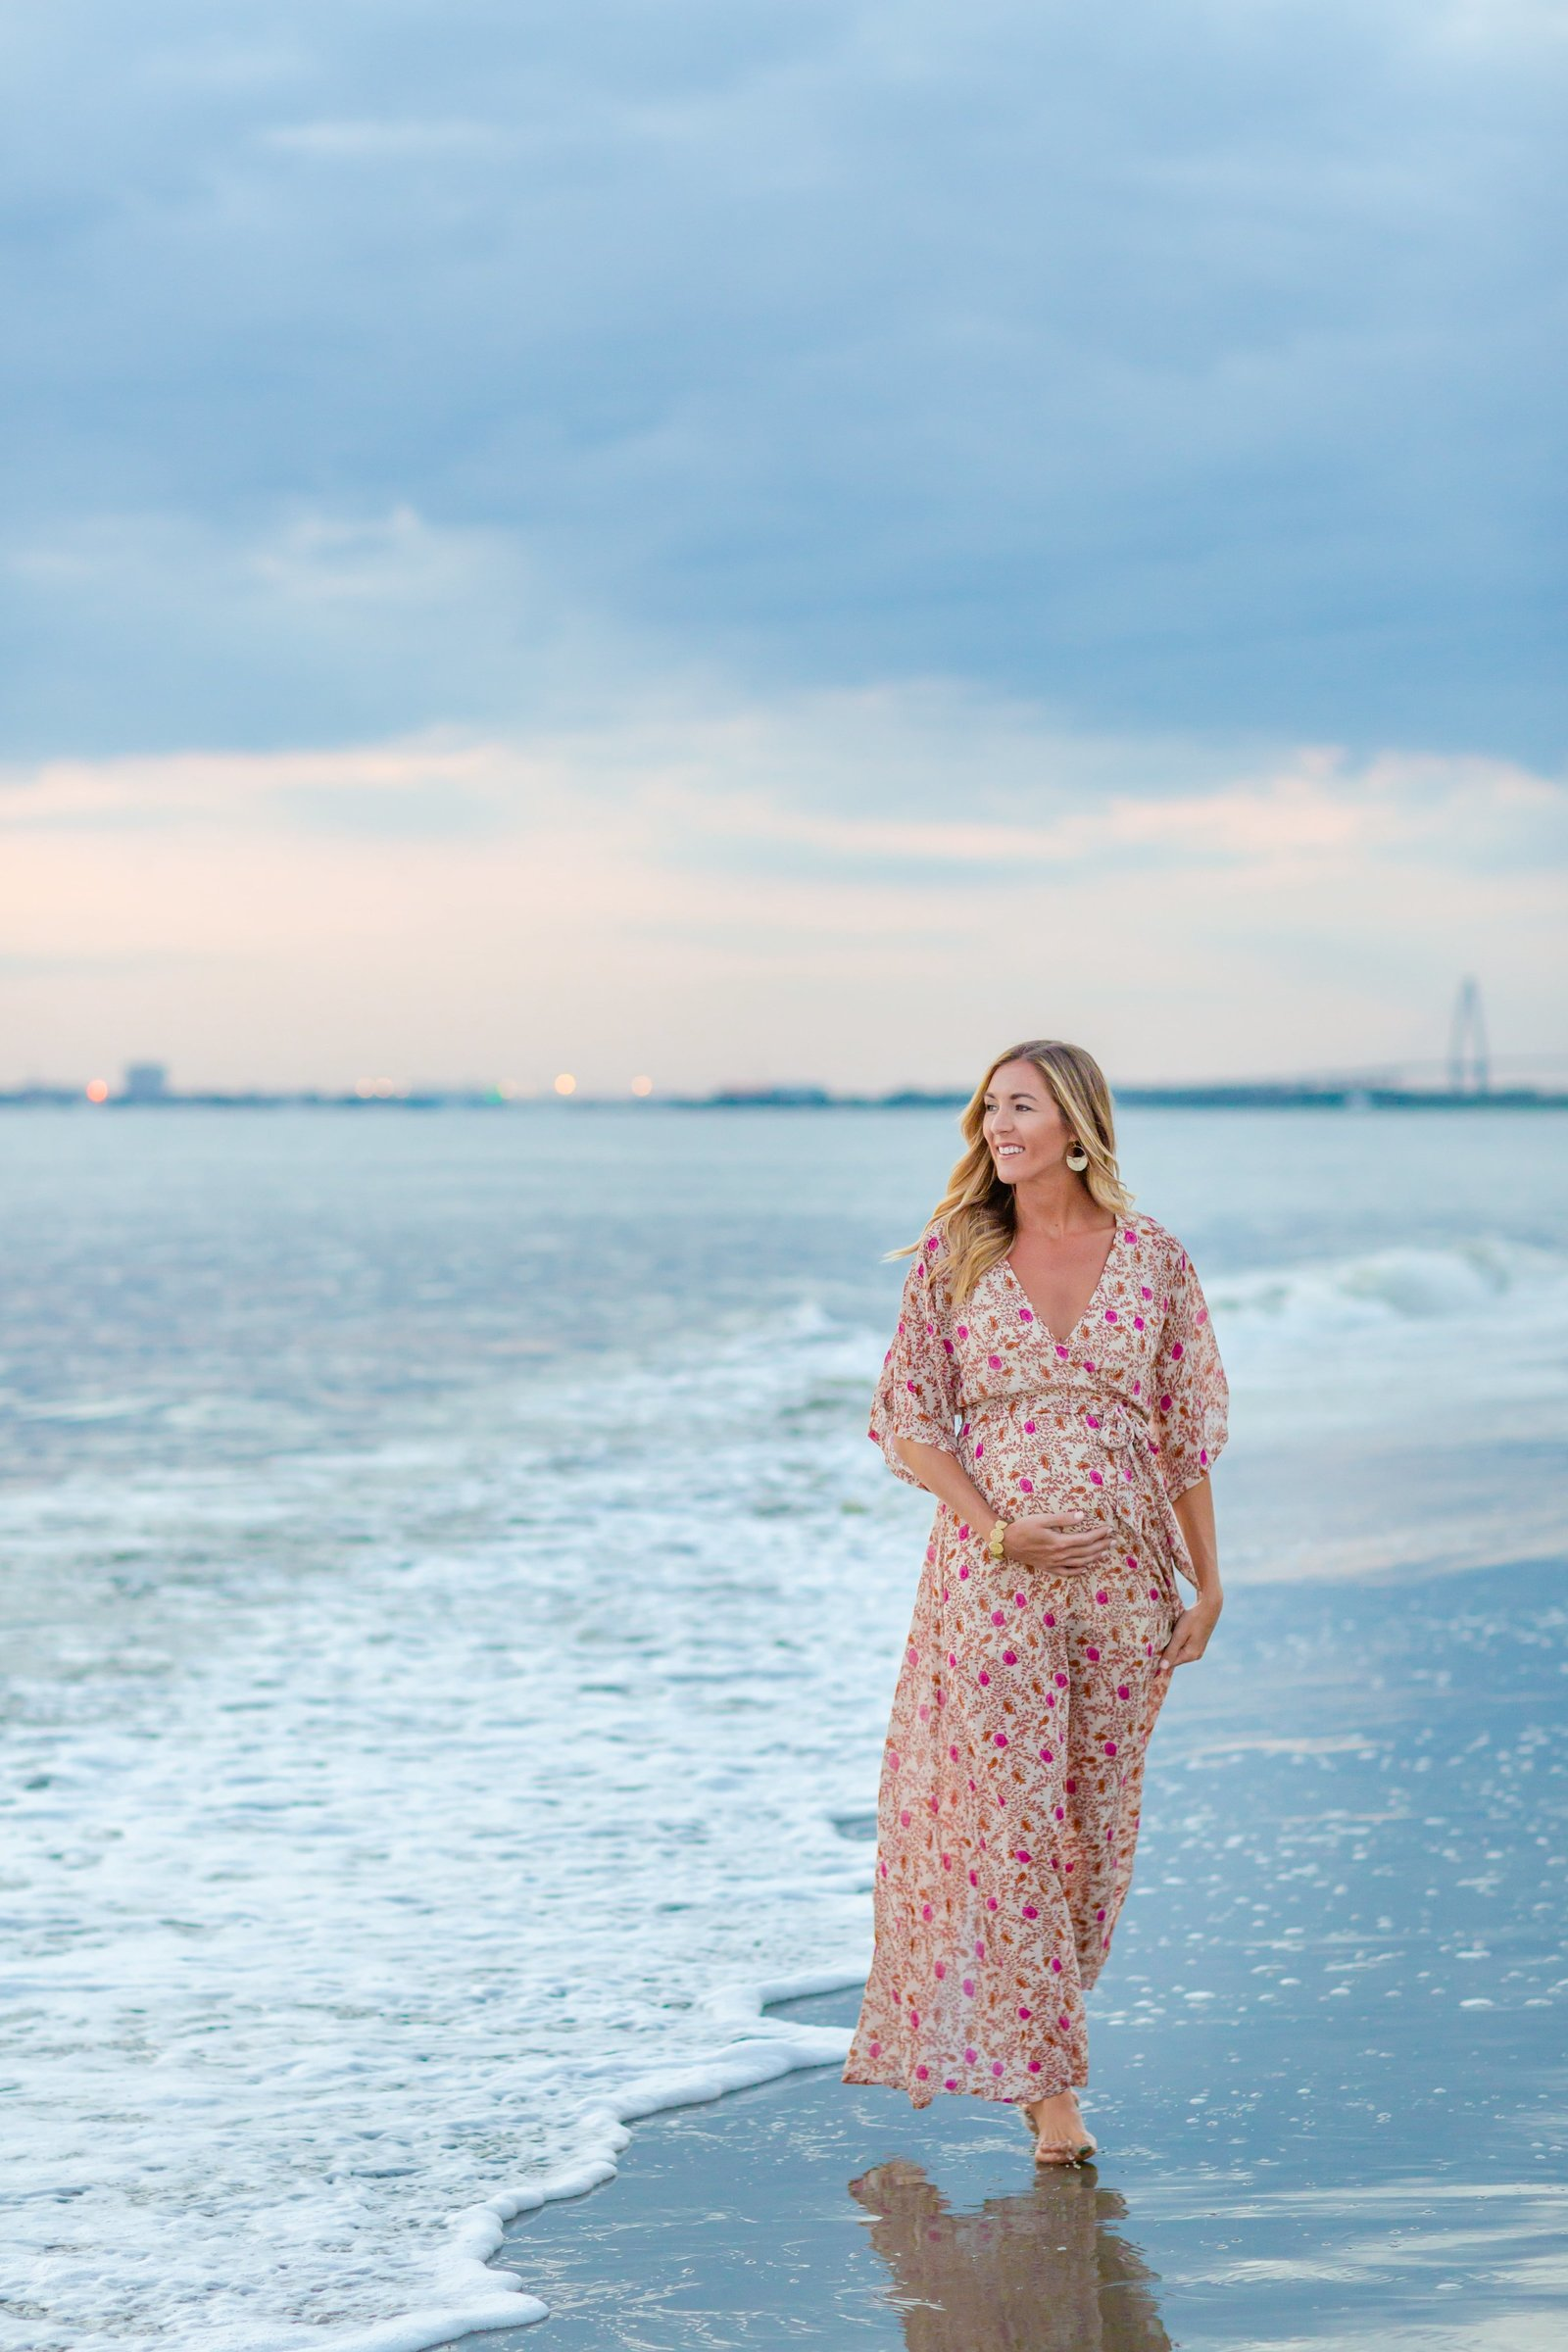 Corin-maternity-photos-isle-of-palms-south-carolina-14-min